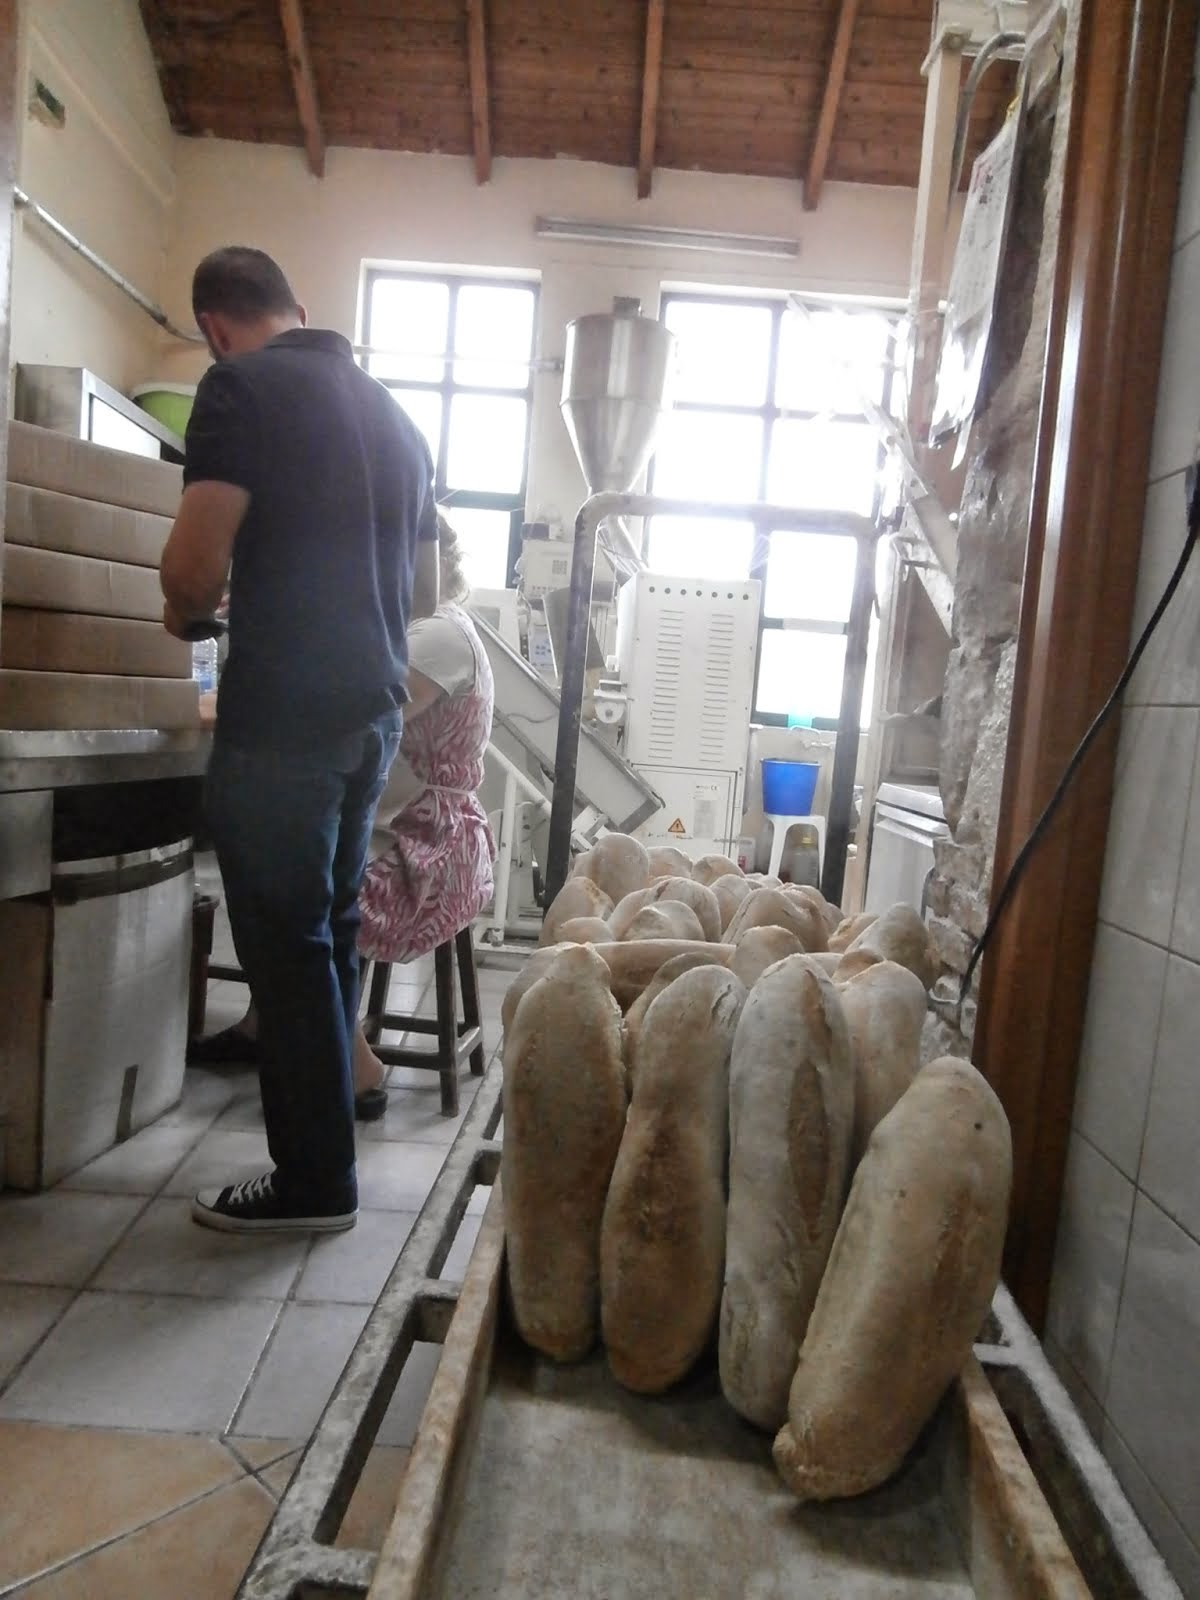 Bread Baked in a Wood Oven, Chania, October 2014